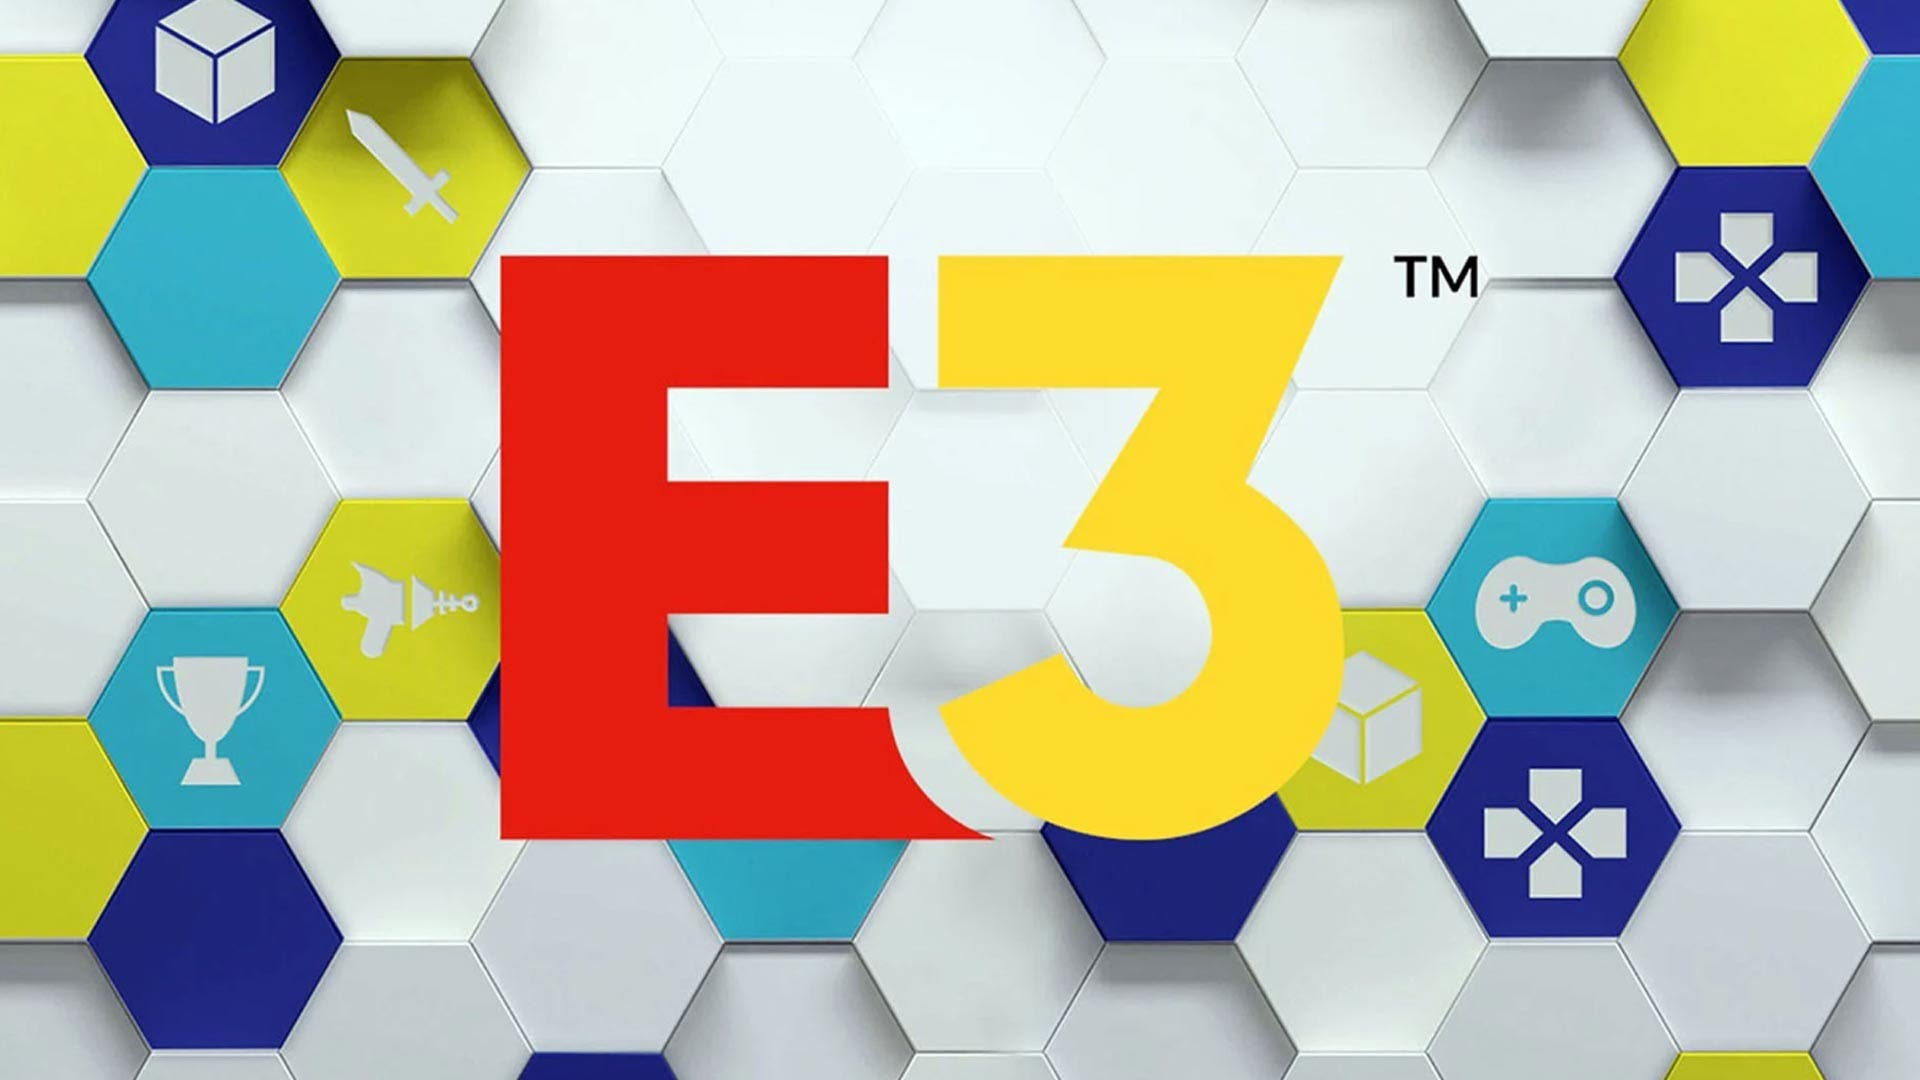 E3 2021: Which publishers will participate in the event?